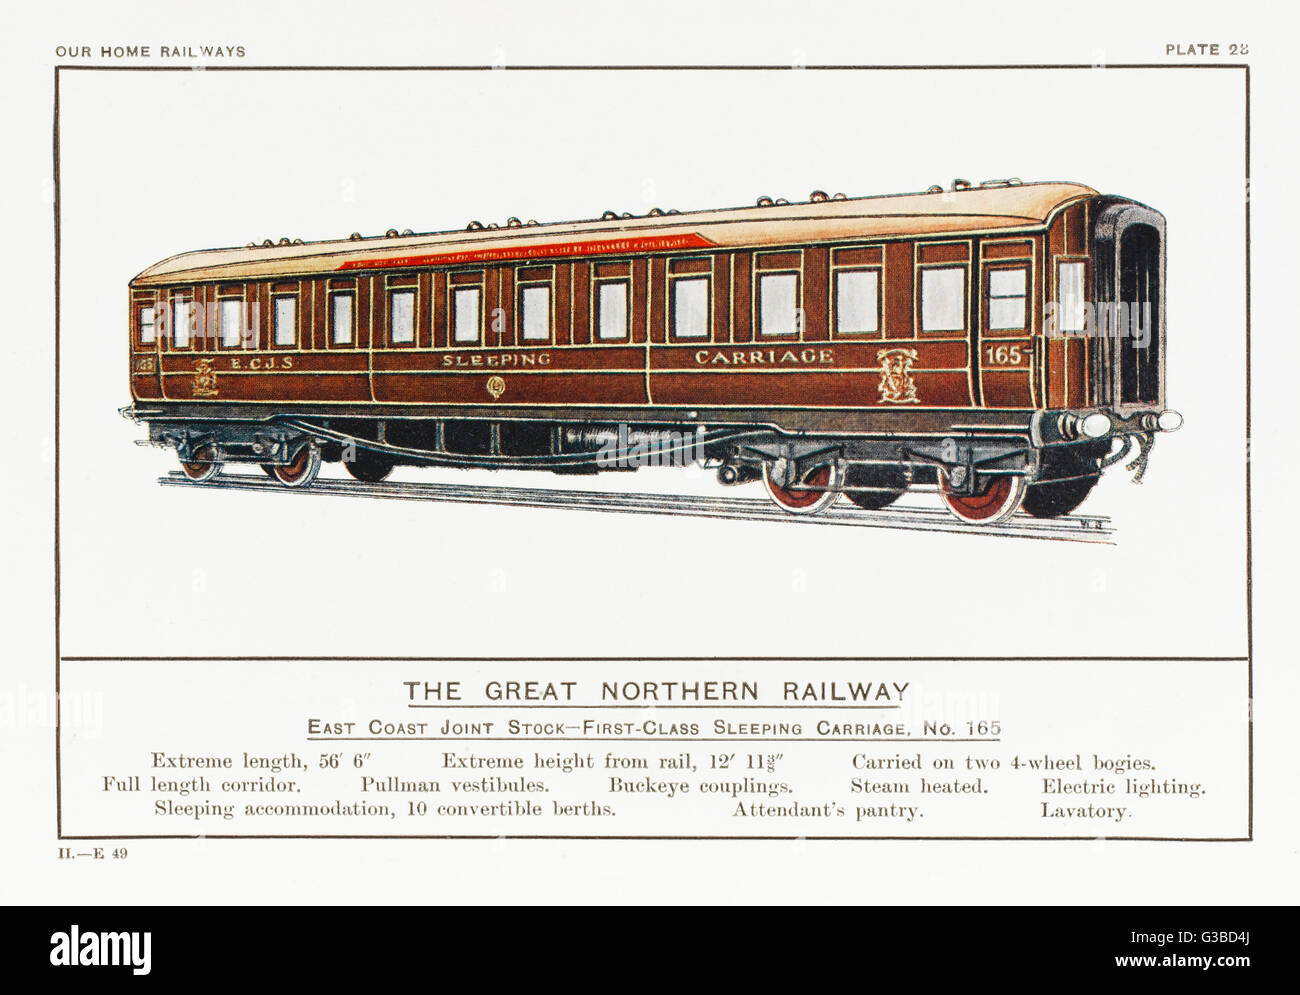 great-northern-railway-sleeping-carriage